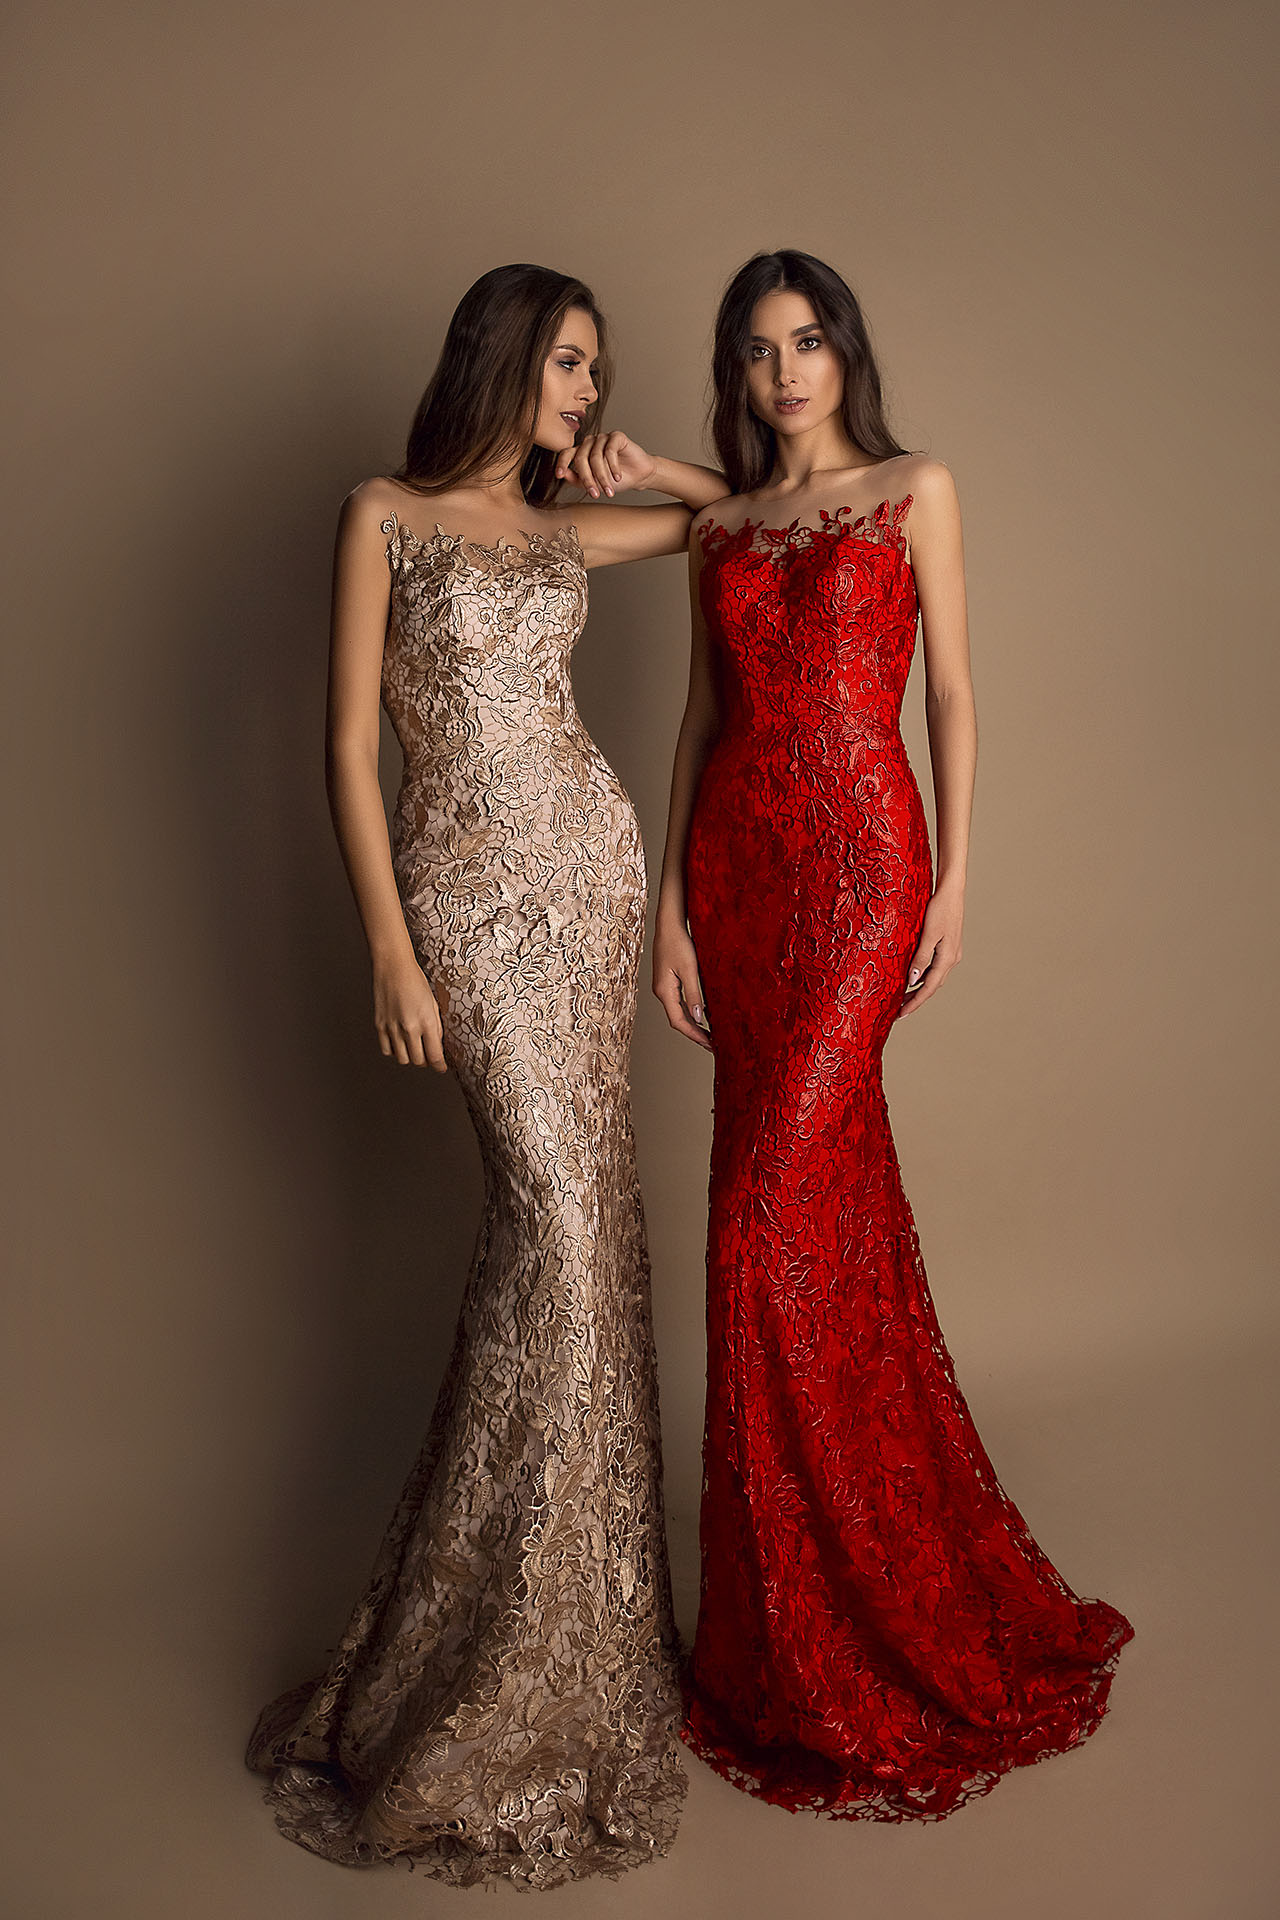 Evening gowns S-1603 cappuccino Silhouette  Fitted  Color  Cappuccino  Red  Neckline  Sweetheart  Illusion  Sleeves  Sleeveless  Train  No train